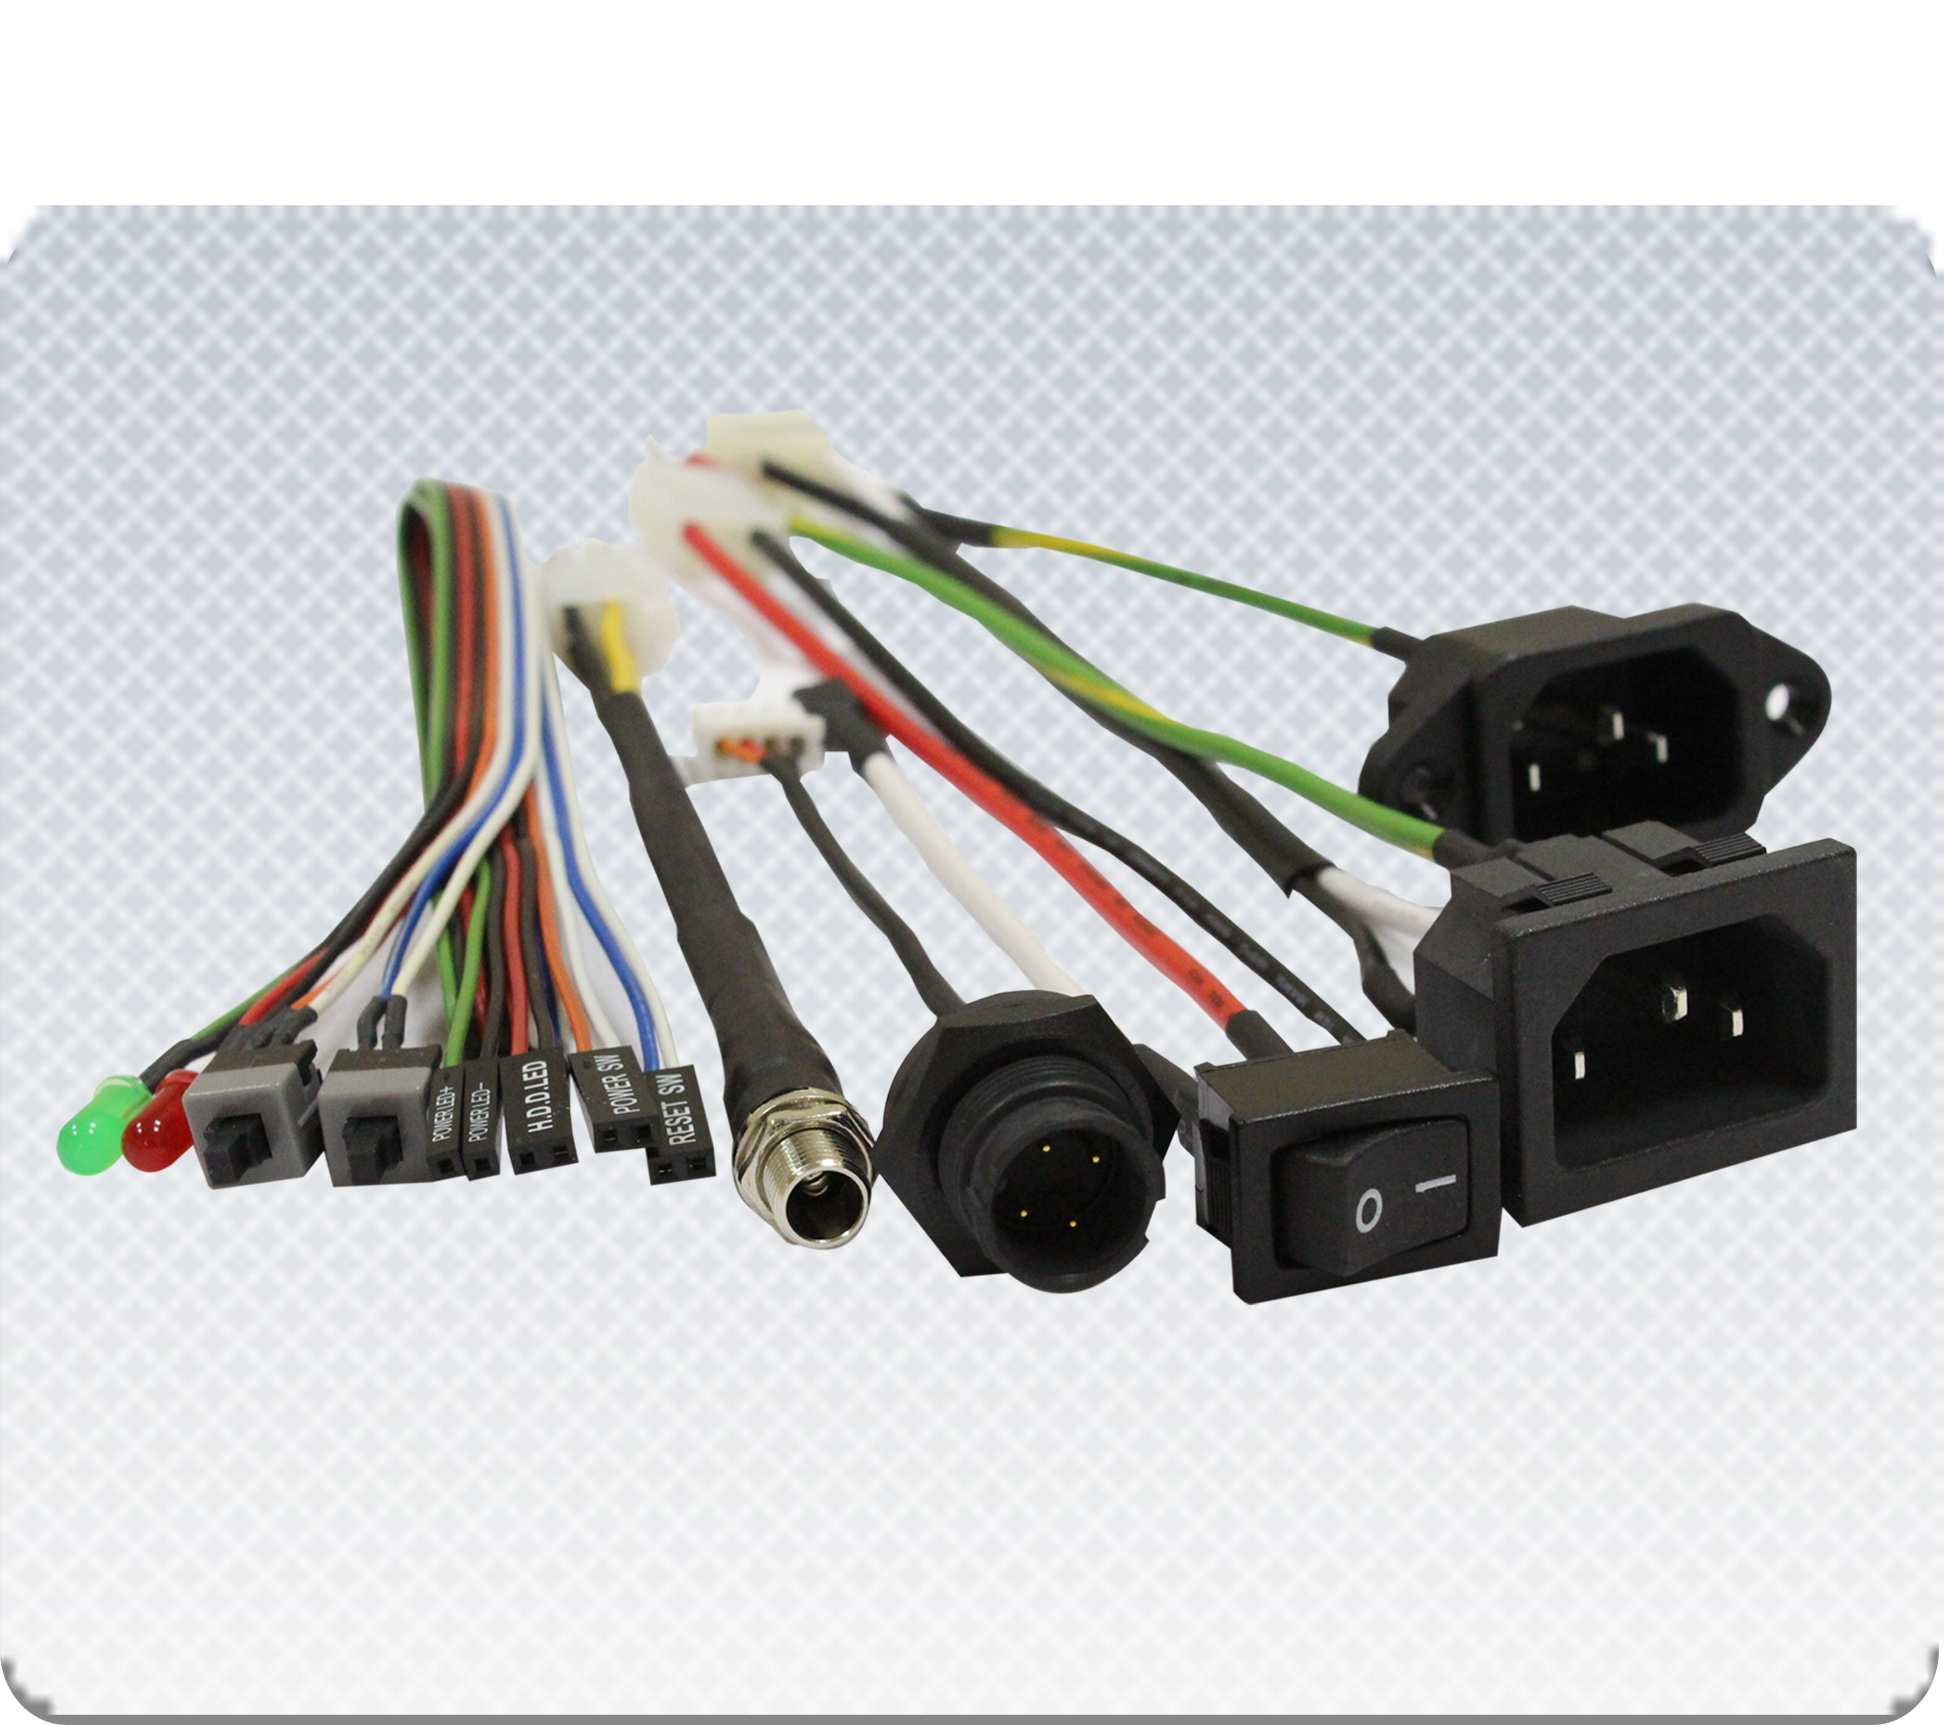 Wiring Harness(1)(3) molded cable, molded cable manufacturer & supplier molded wire harness at creativeand.co